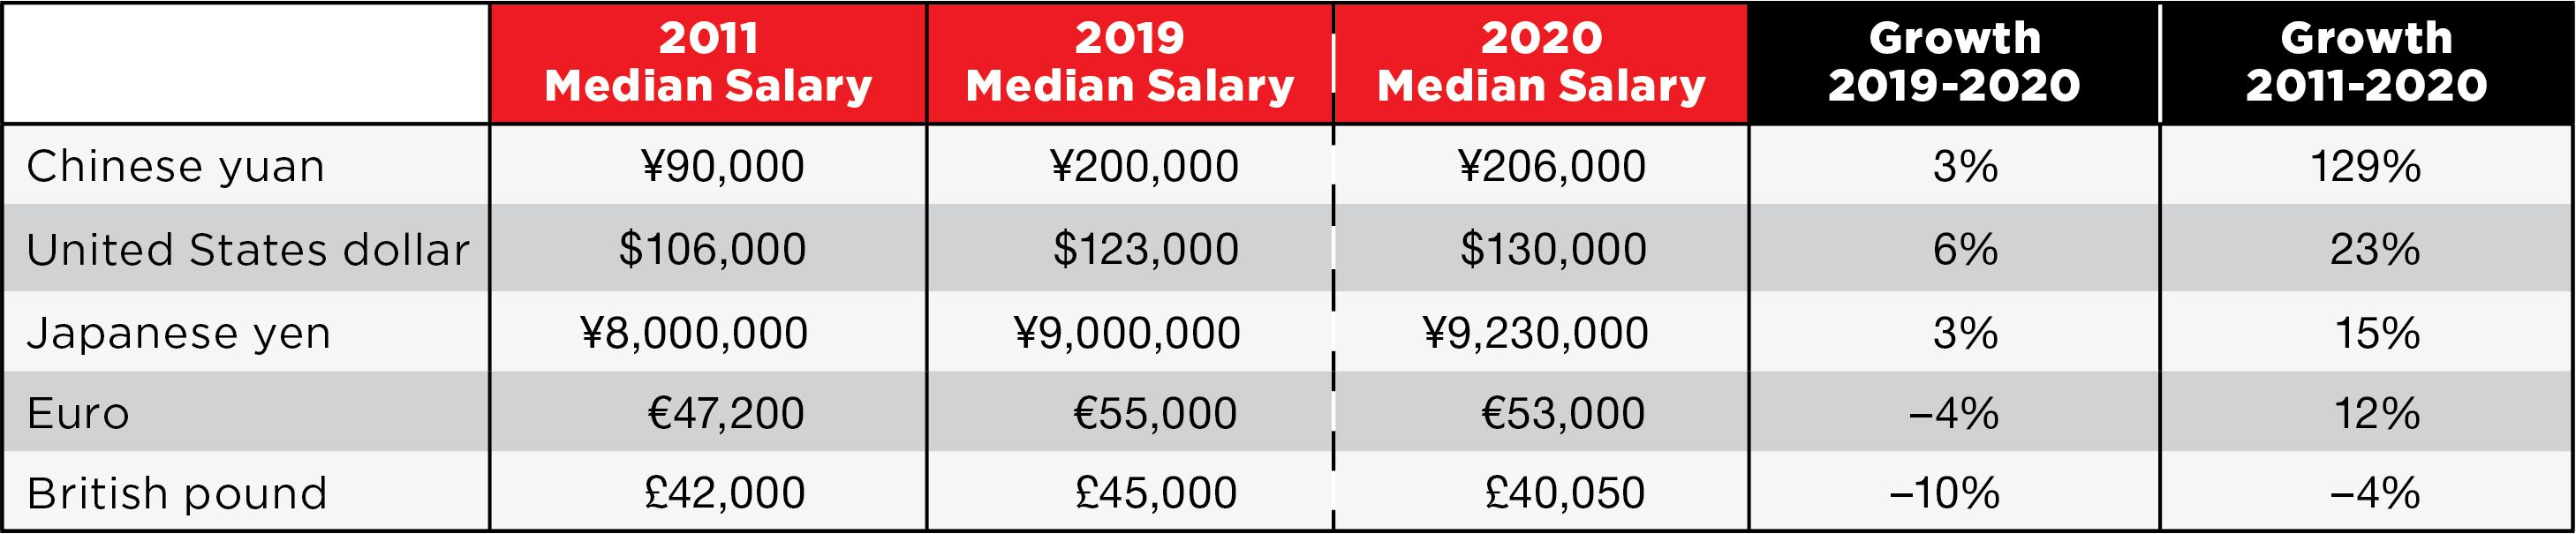 Growth in Median Salaries